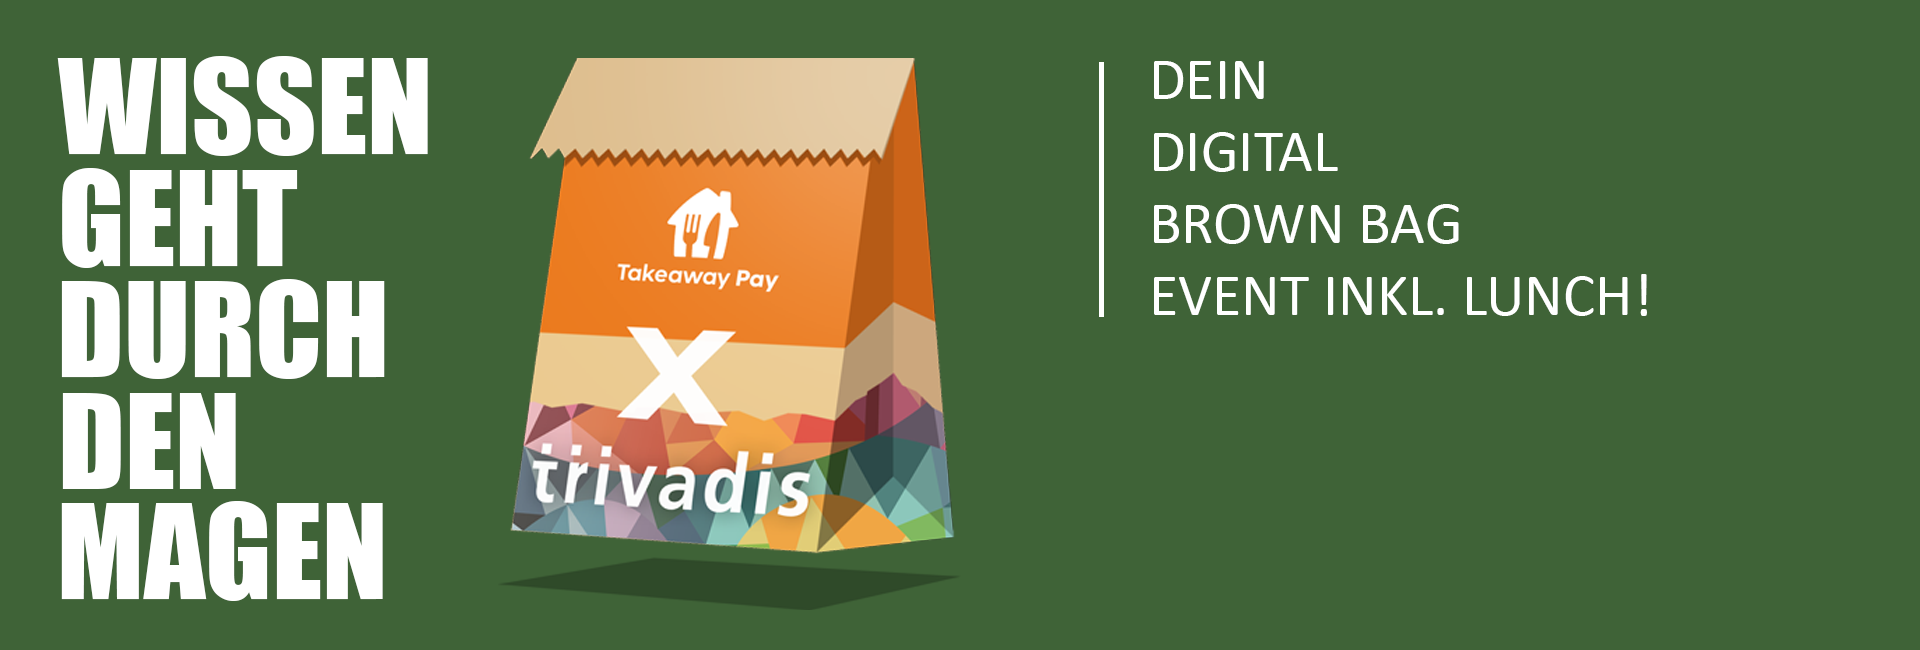 header-trivadis-digital-brown-bag-event-the-missing-piece_1920x650px_NEU